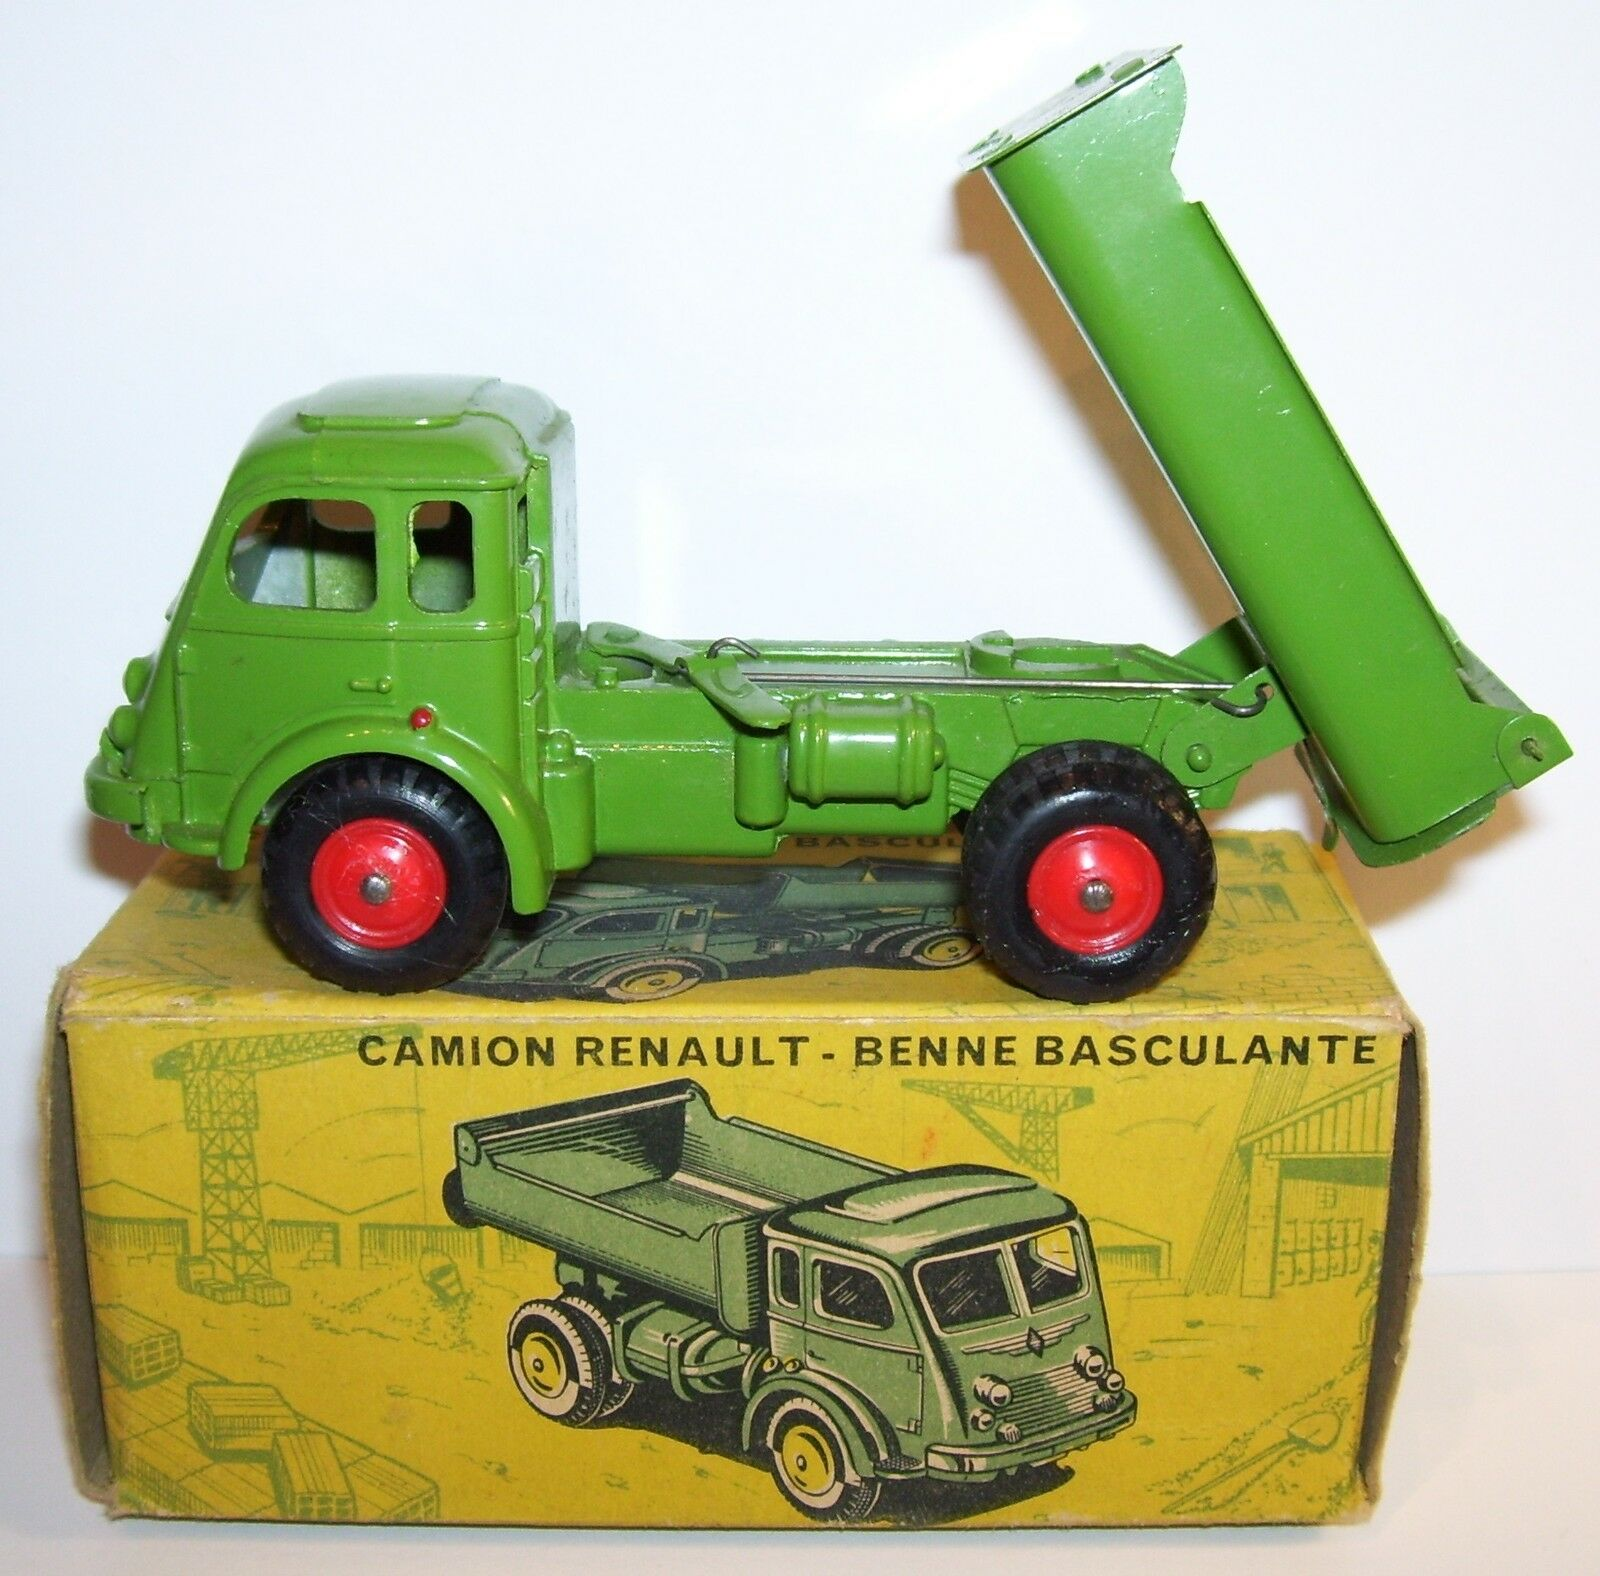 MADE FRANCE OLD CIJ CAMION RENAULT FAINEANT BENNE BASCULANTE REF REF REF 3 80 1 55 BOX b74892